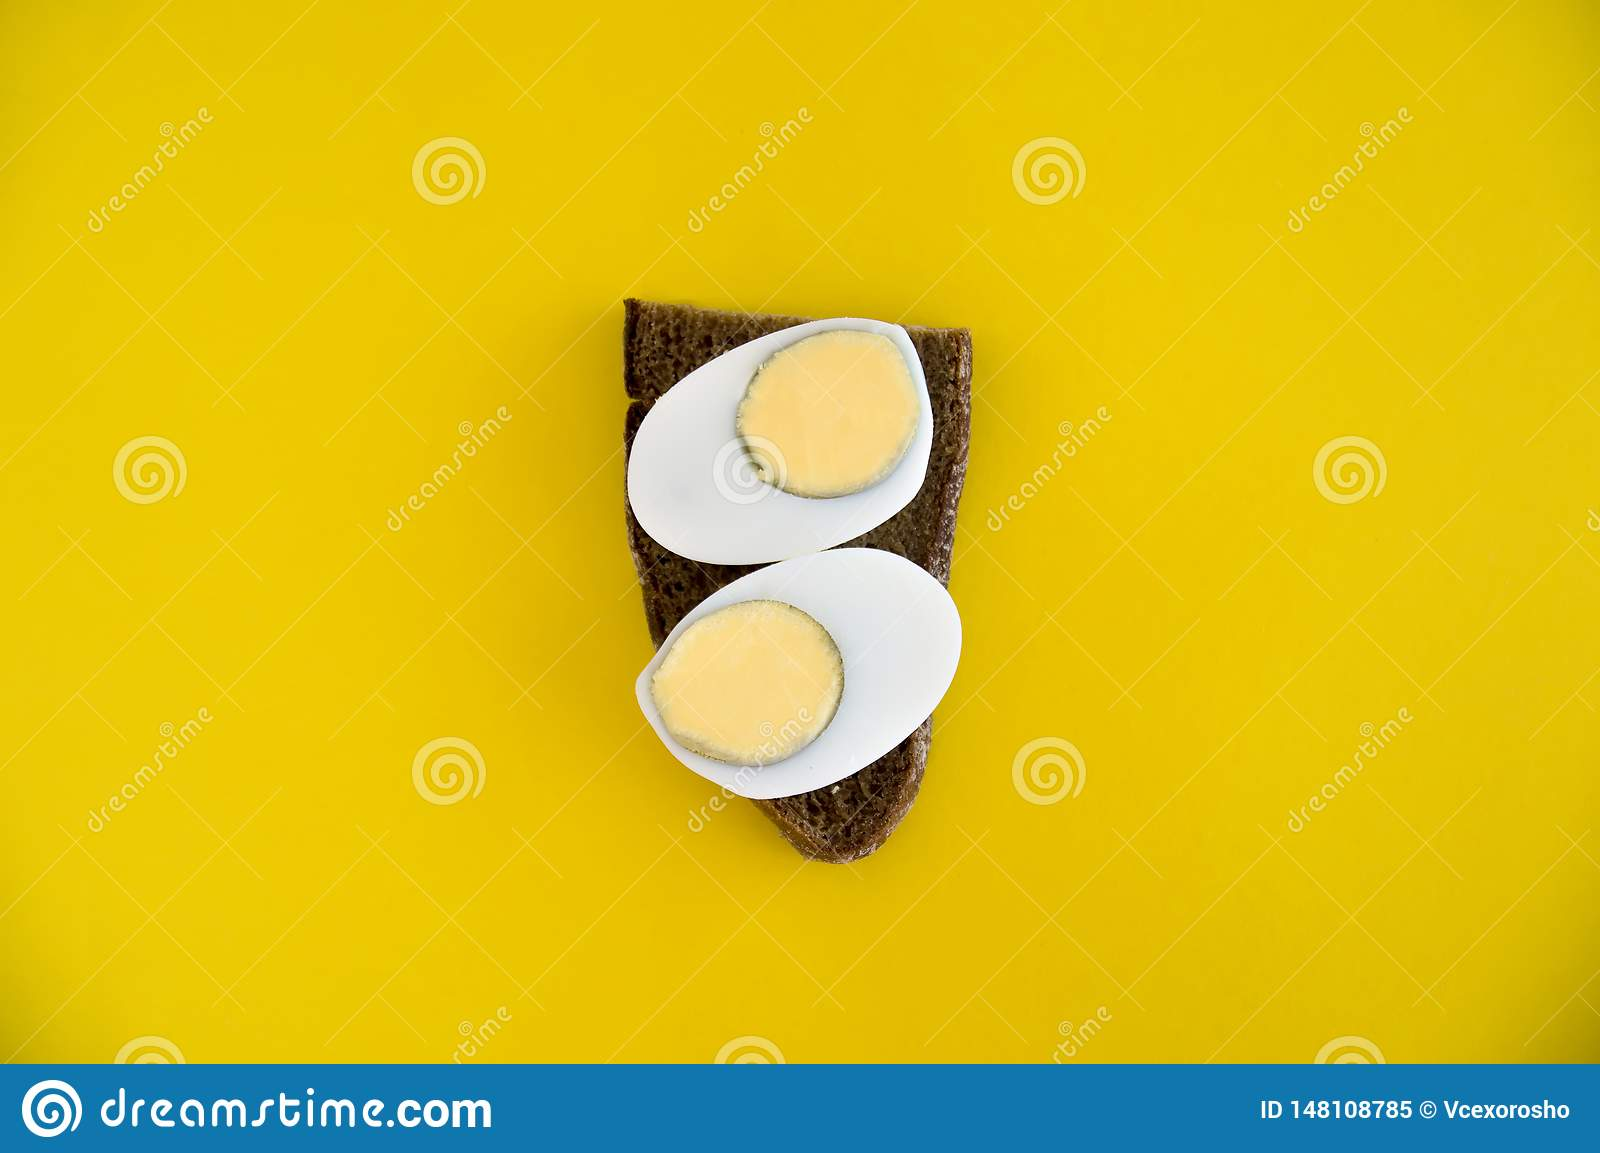 A sandwich of rye bread and boiled egg lies on a yellow background. Breakfast for diet. Toast with bread and egg dietary breakfast